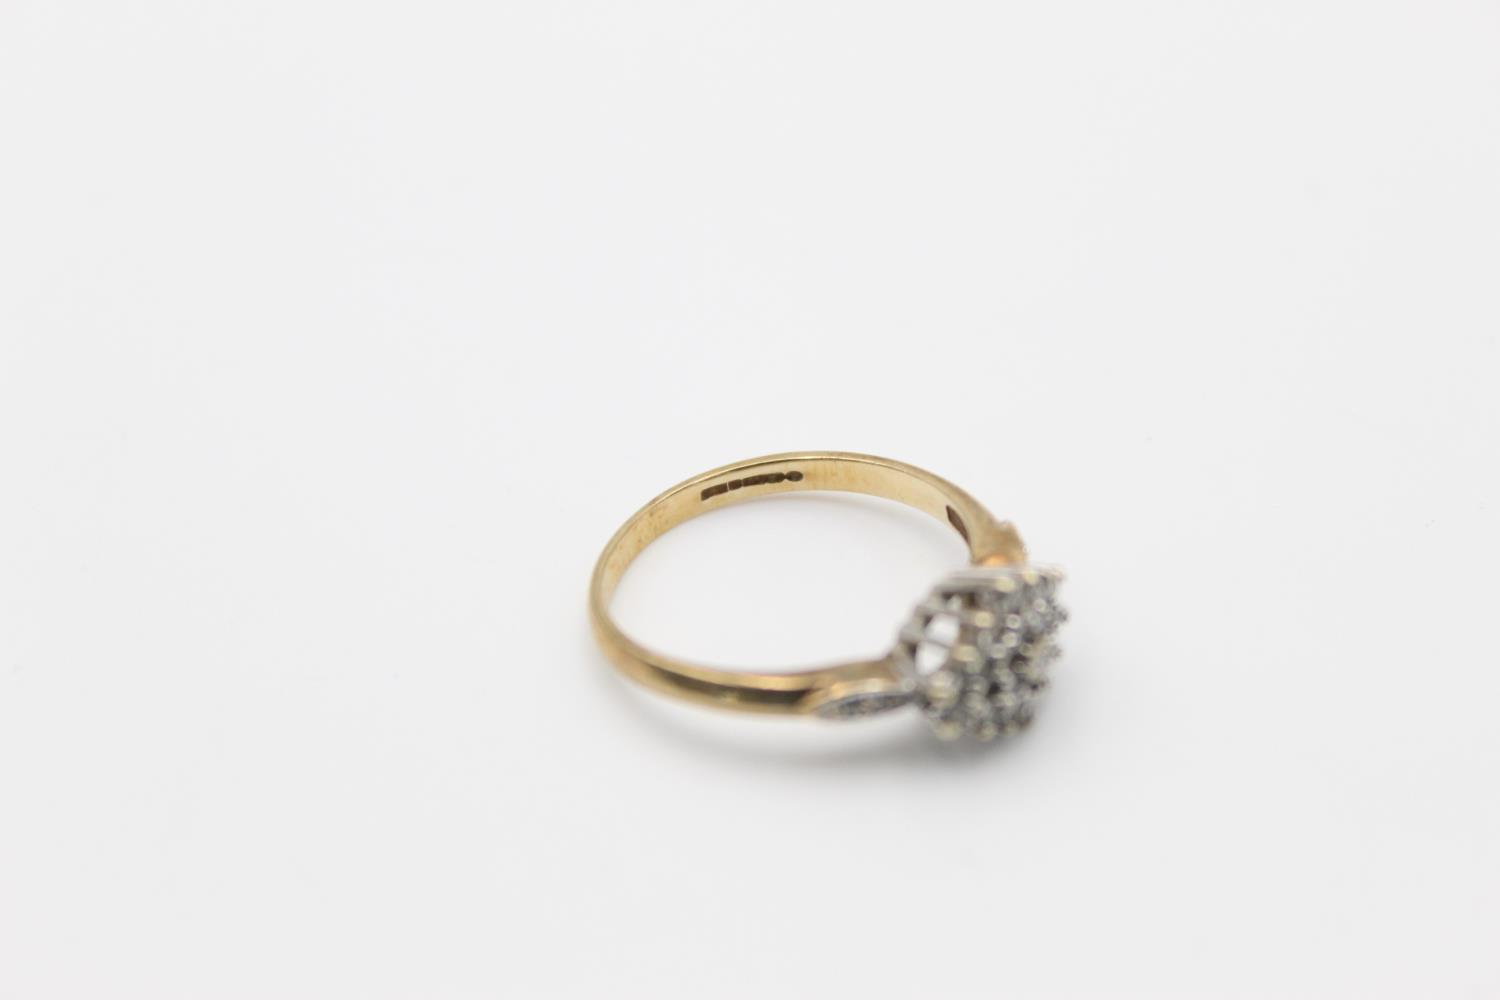 Vintage 9ct Gold diamond cluster ring 2.5g Size p - Image 5 of 5